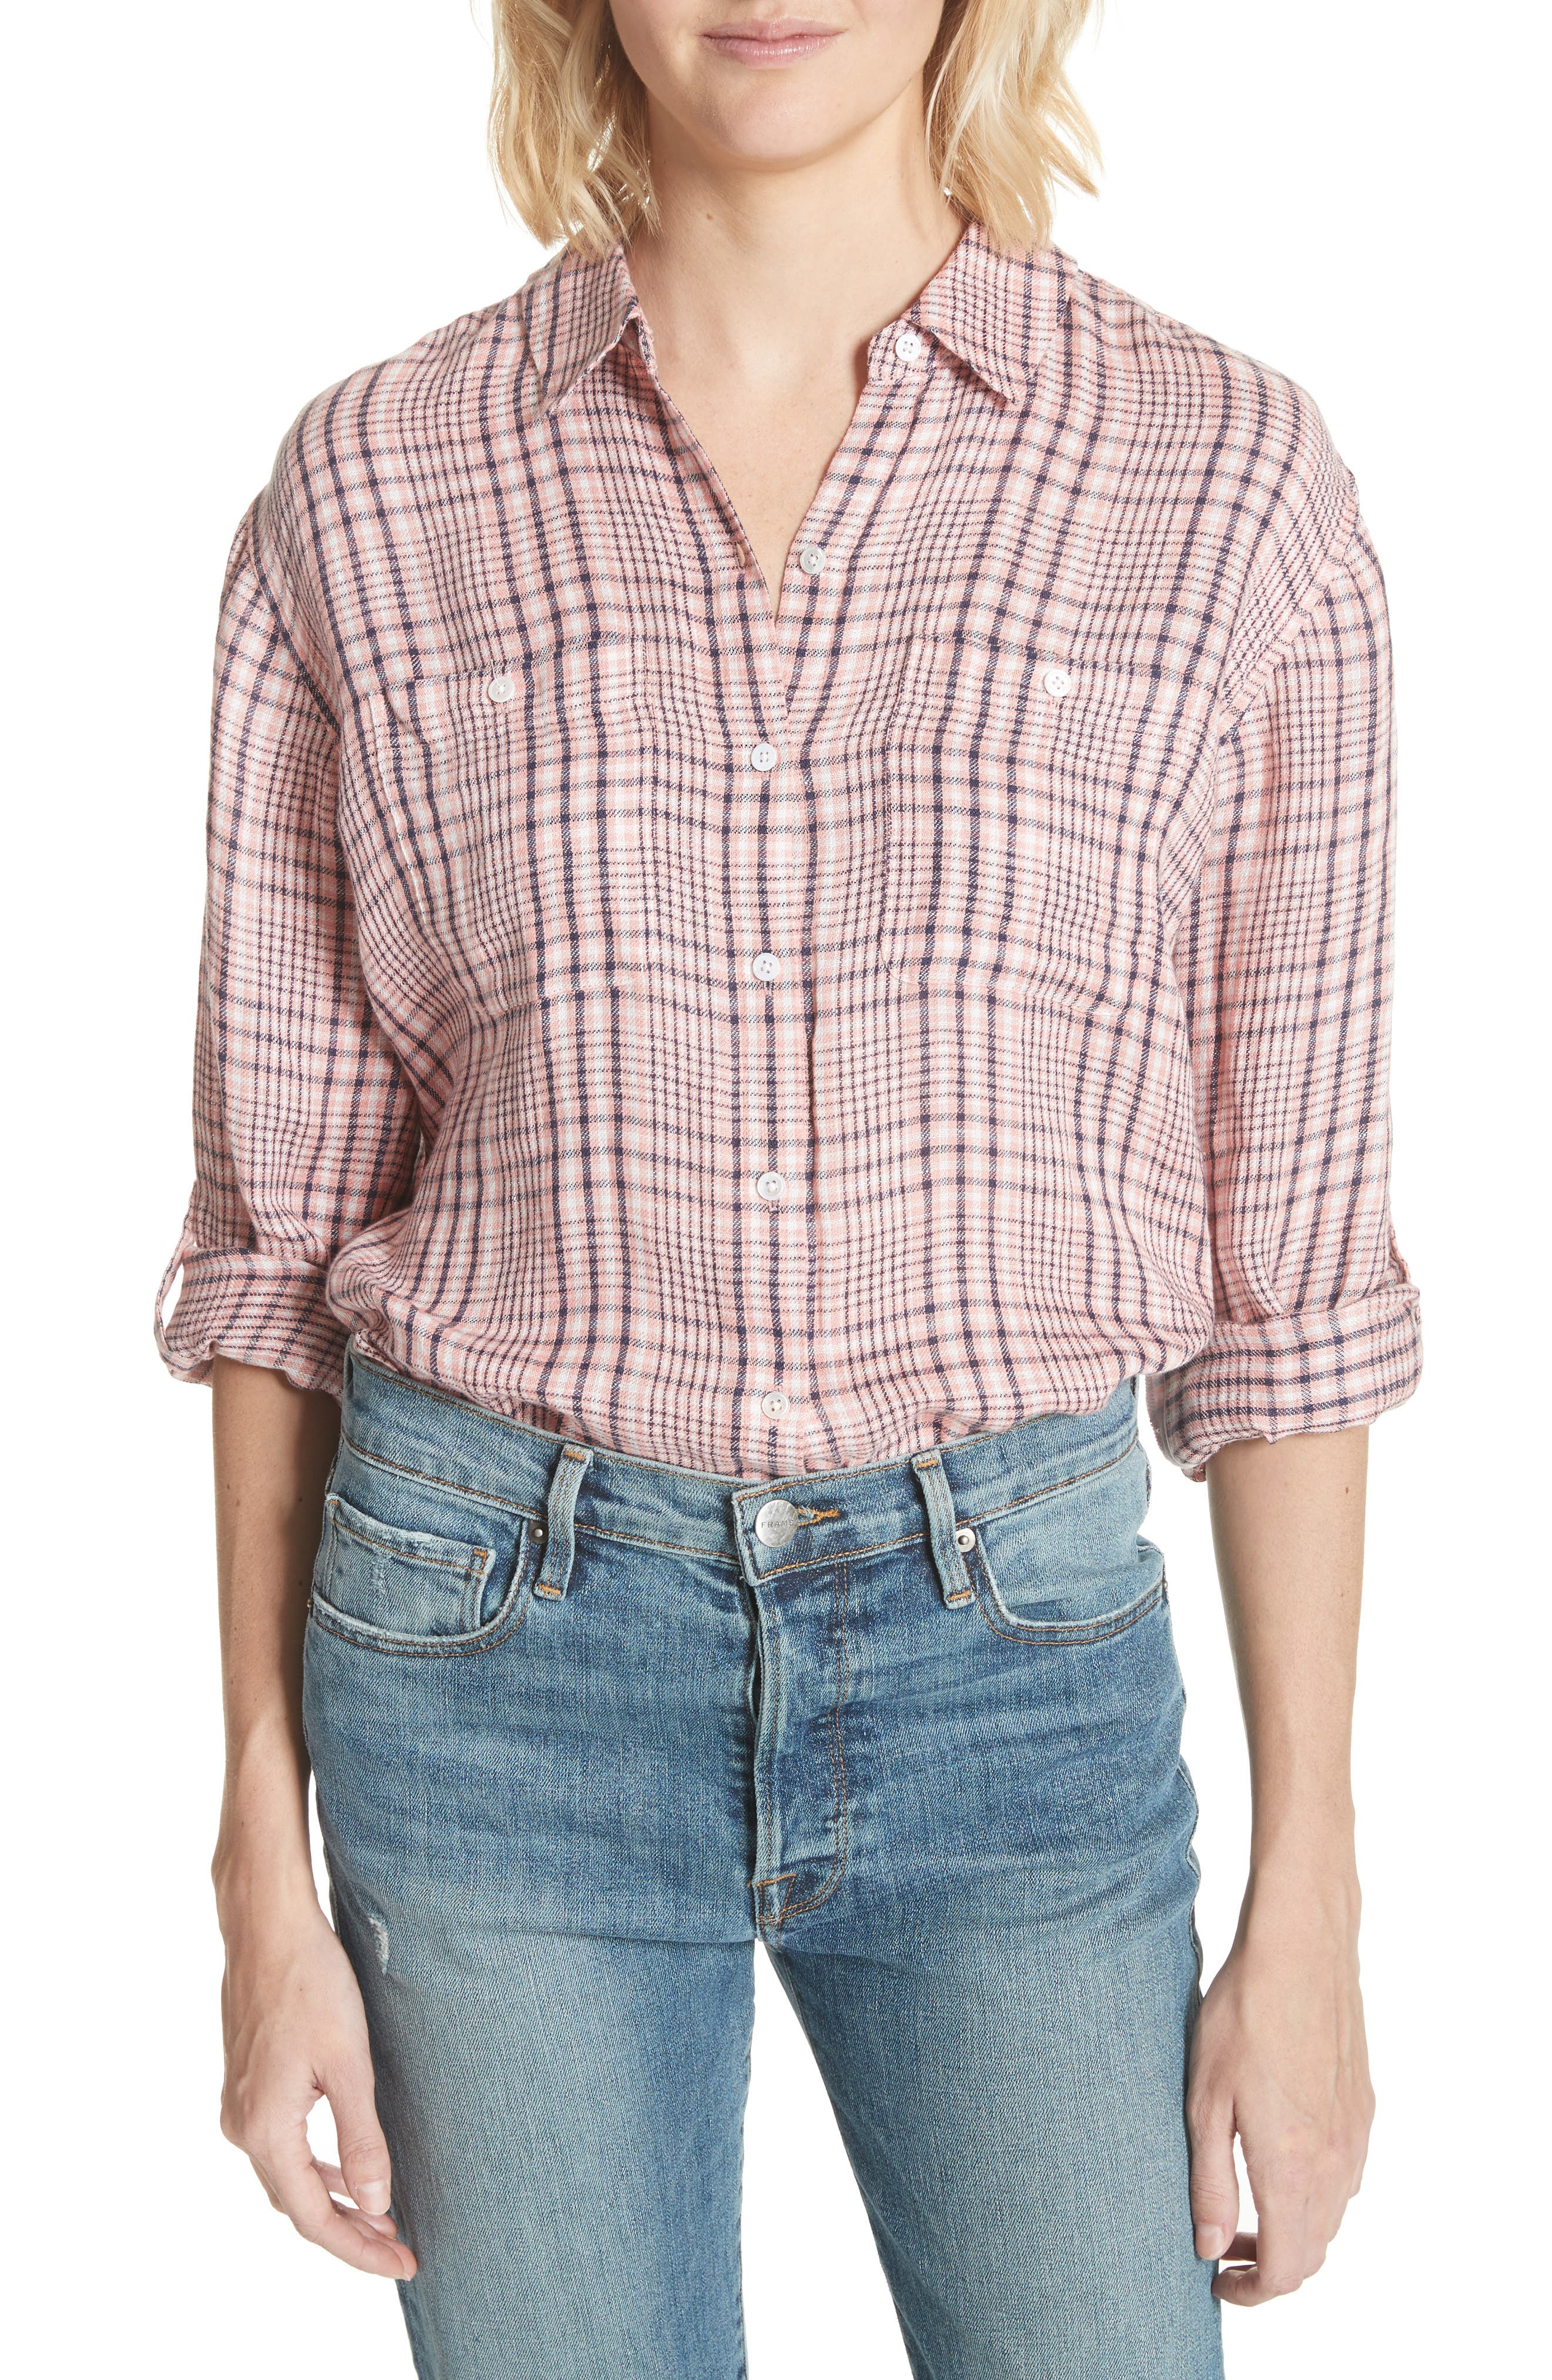 Lidelle Plaid Linen Shirt,                             Main thumbnail 1, color,                             658